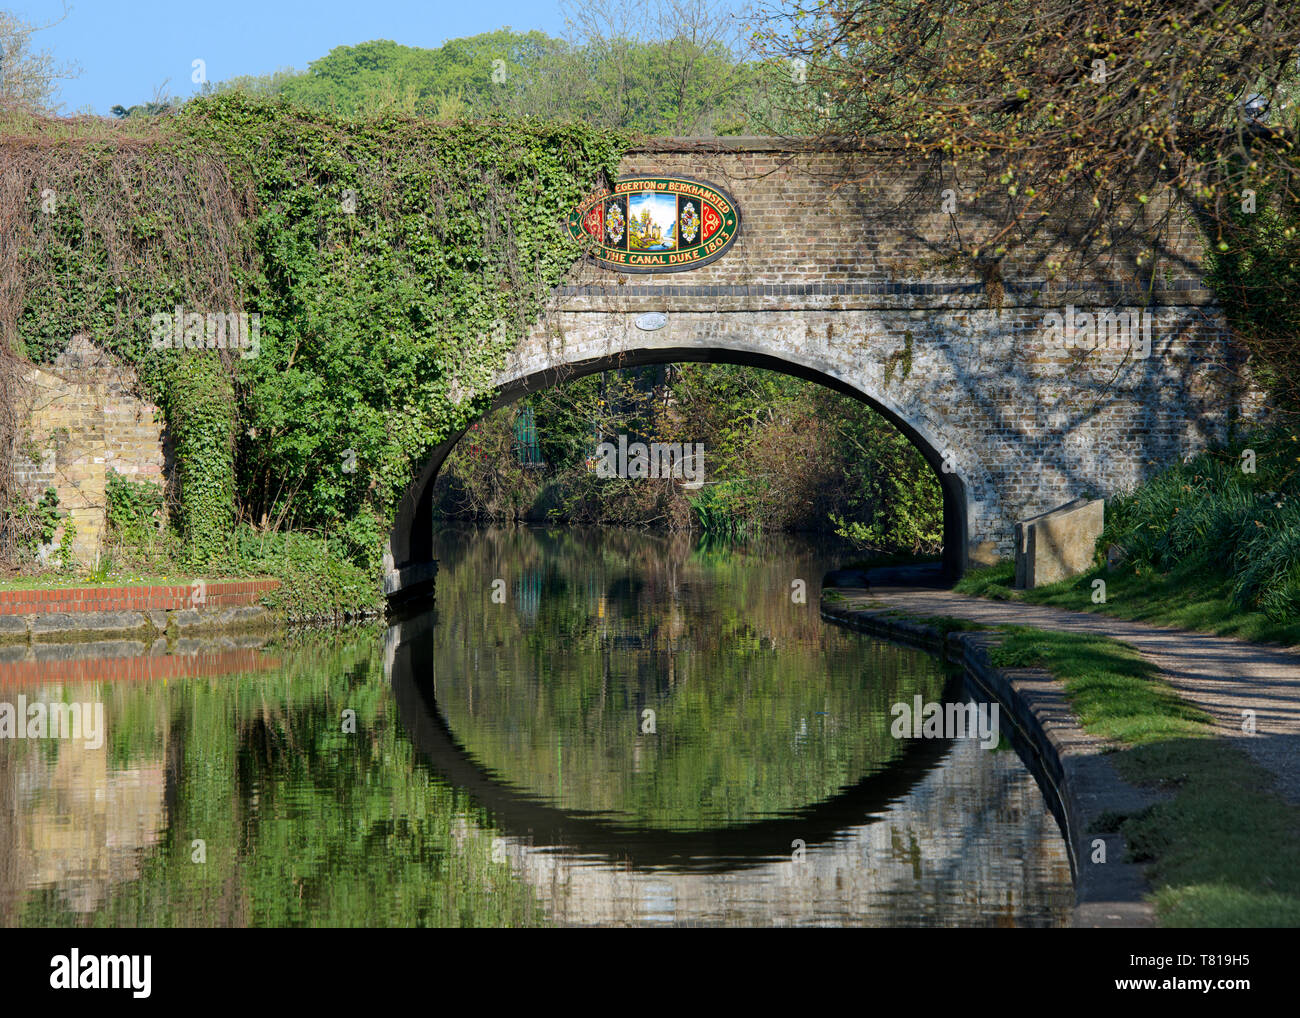 Bridge over Grand Union Canal Berkhamsted Hertfordshire England Stock Photo